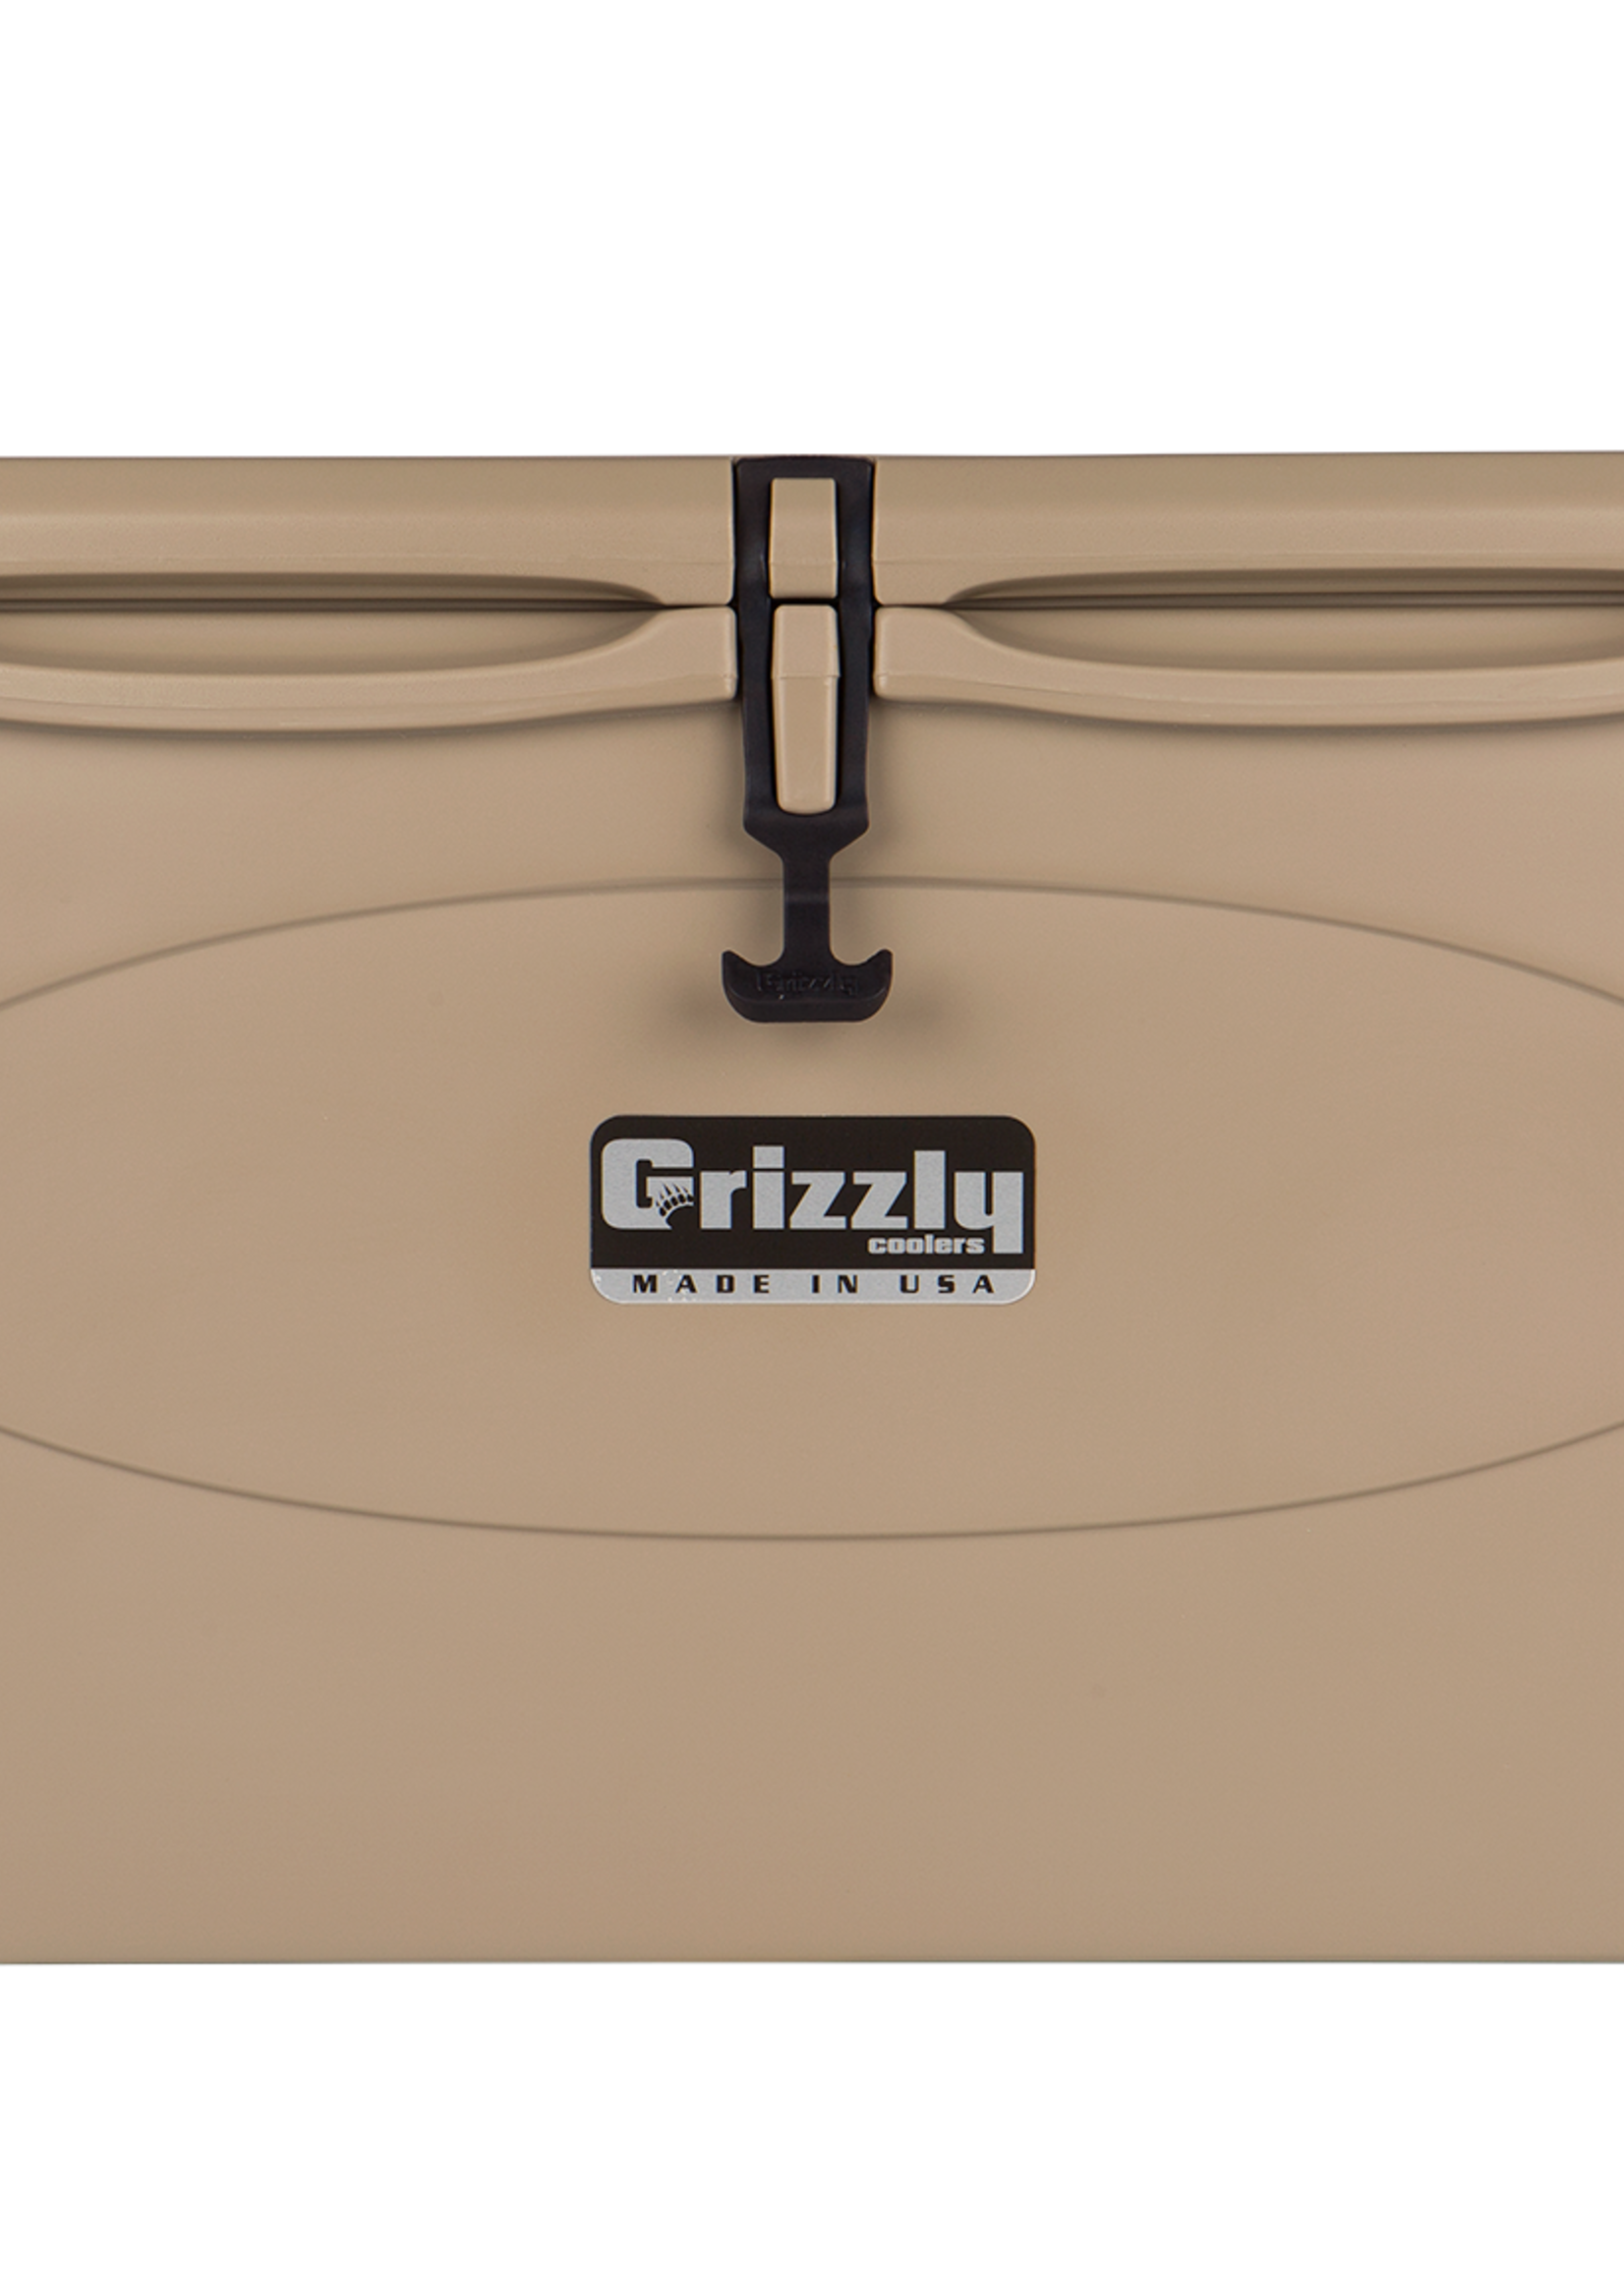 Grizzly Coolers Grizzly 75 Cooler